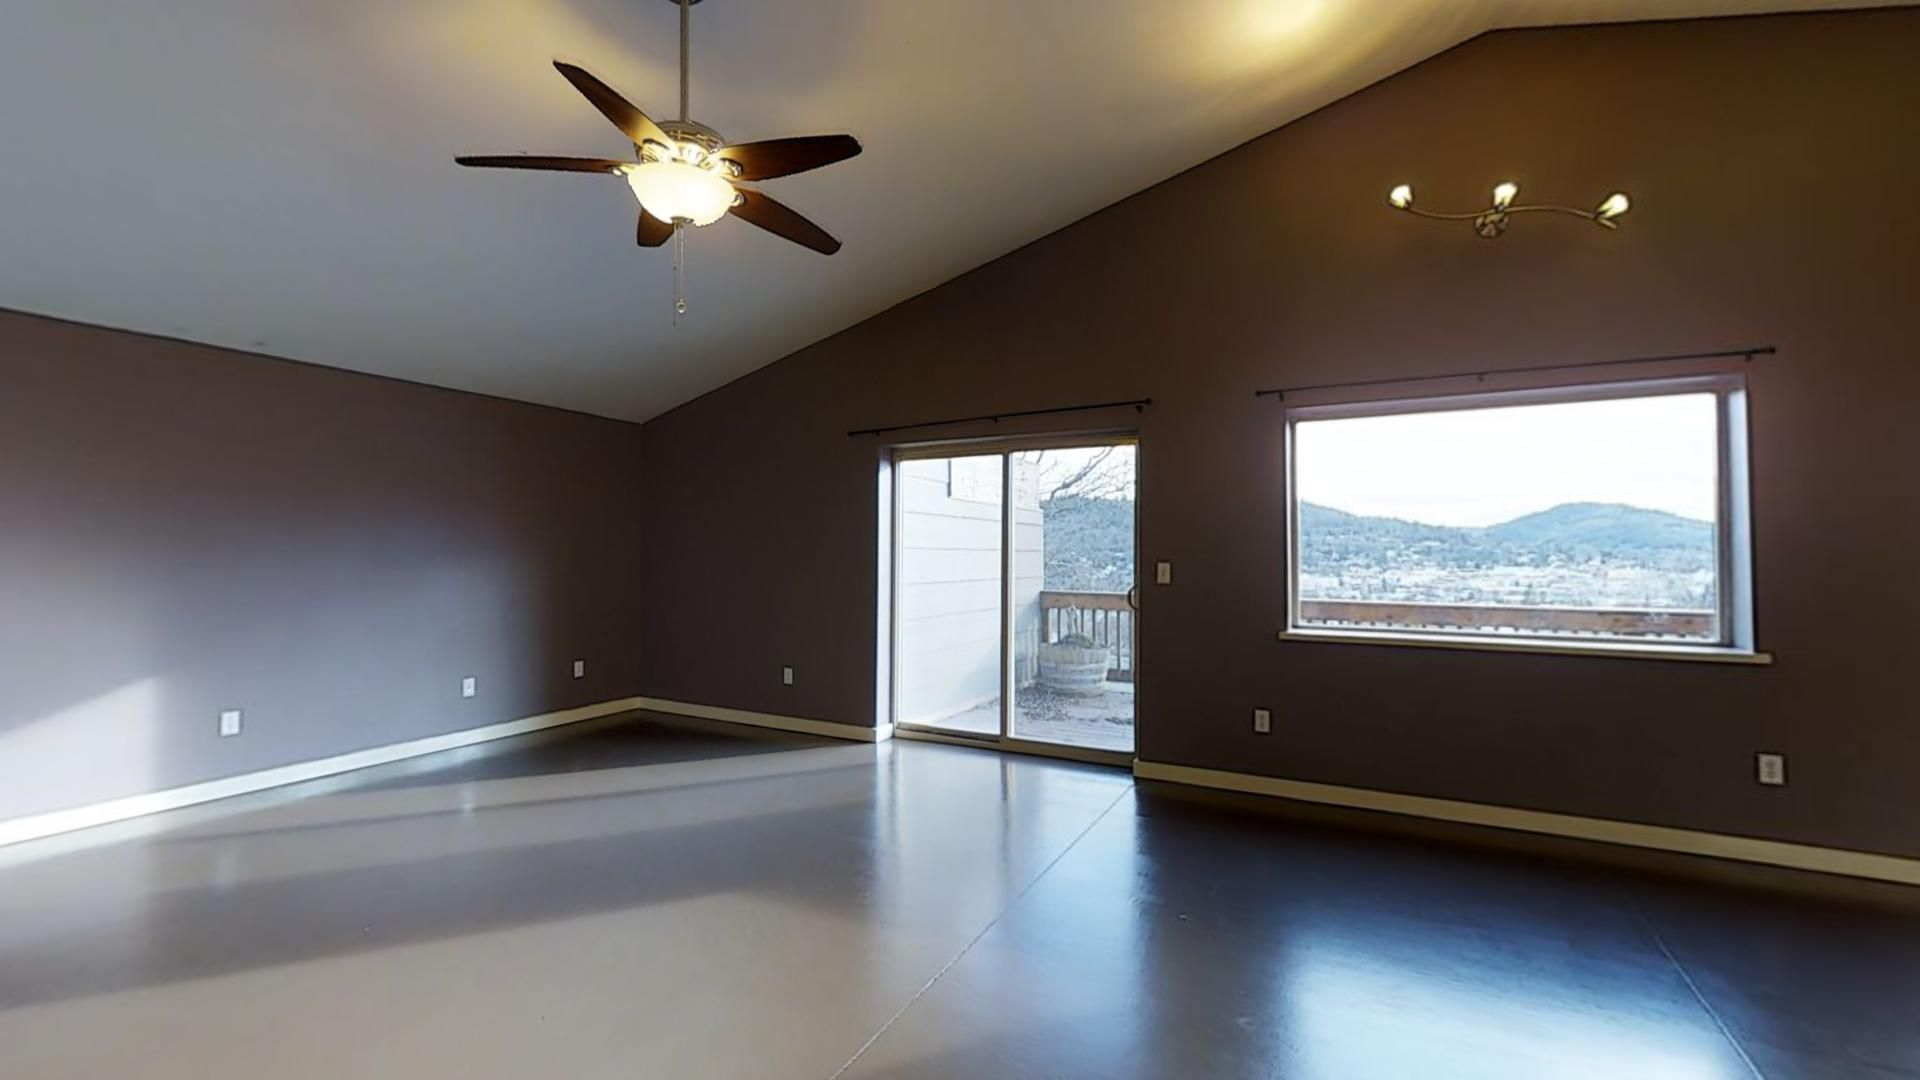 Enjoy a 3D tour of 1074 NE Grandview Drive – Energy Efficient Home with Beautiful Views!  You can view all of our Roseburg Oregon area homes for sale by clicking here: http://idx.roseburgproperties.com/i/roseburg-oregon-area-homes-for-sale Mary Roseburg Properties Group Keller Williams Realty Eugene Springfield 541-371-5500 #RoseburgProperties